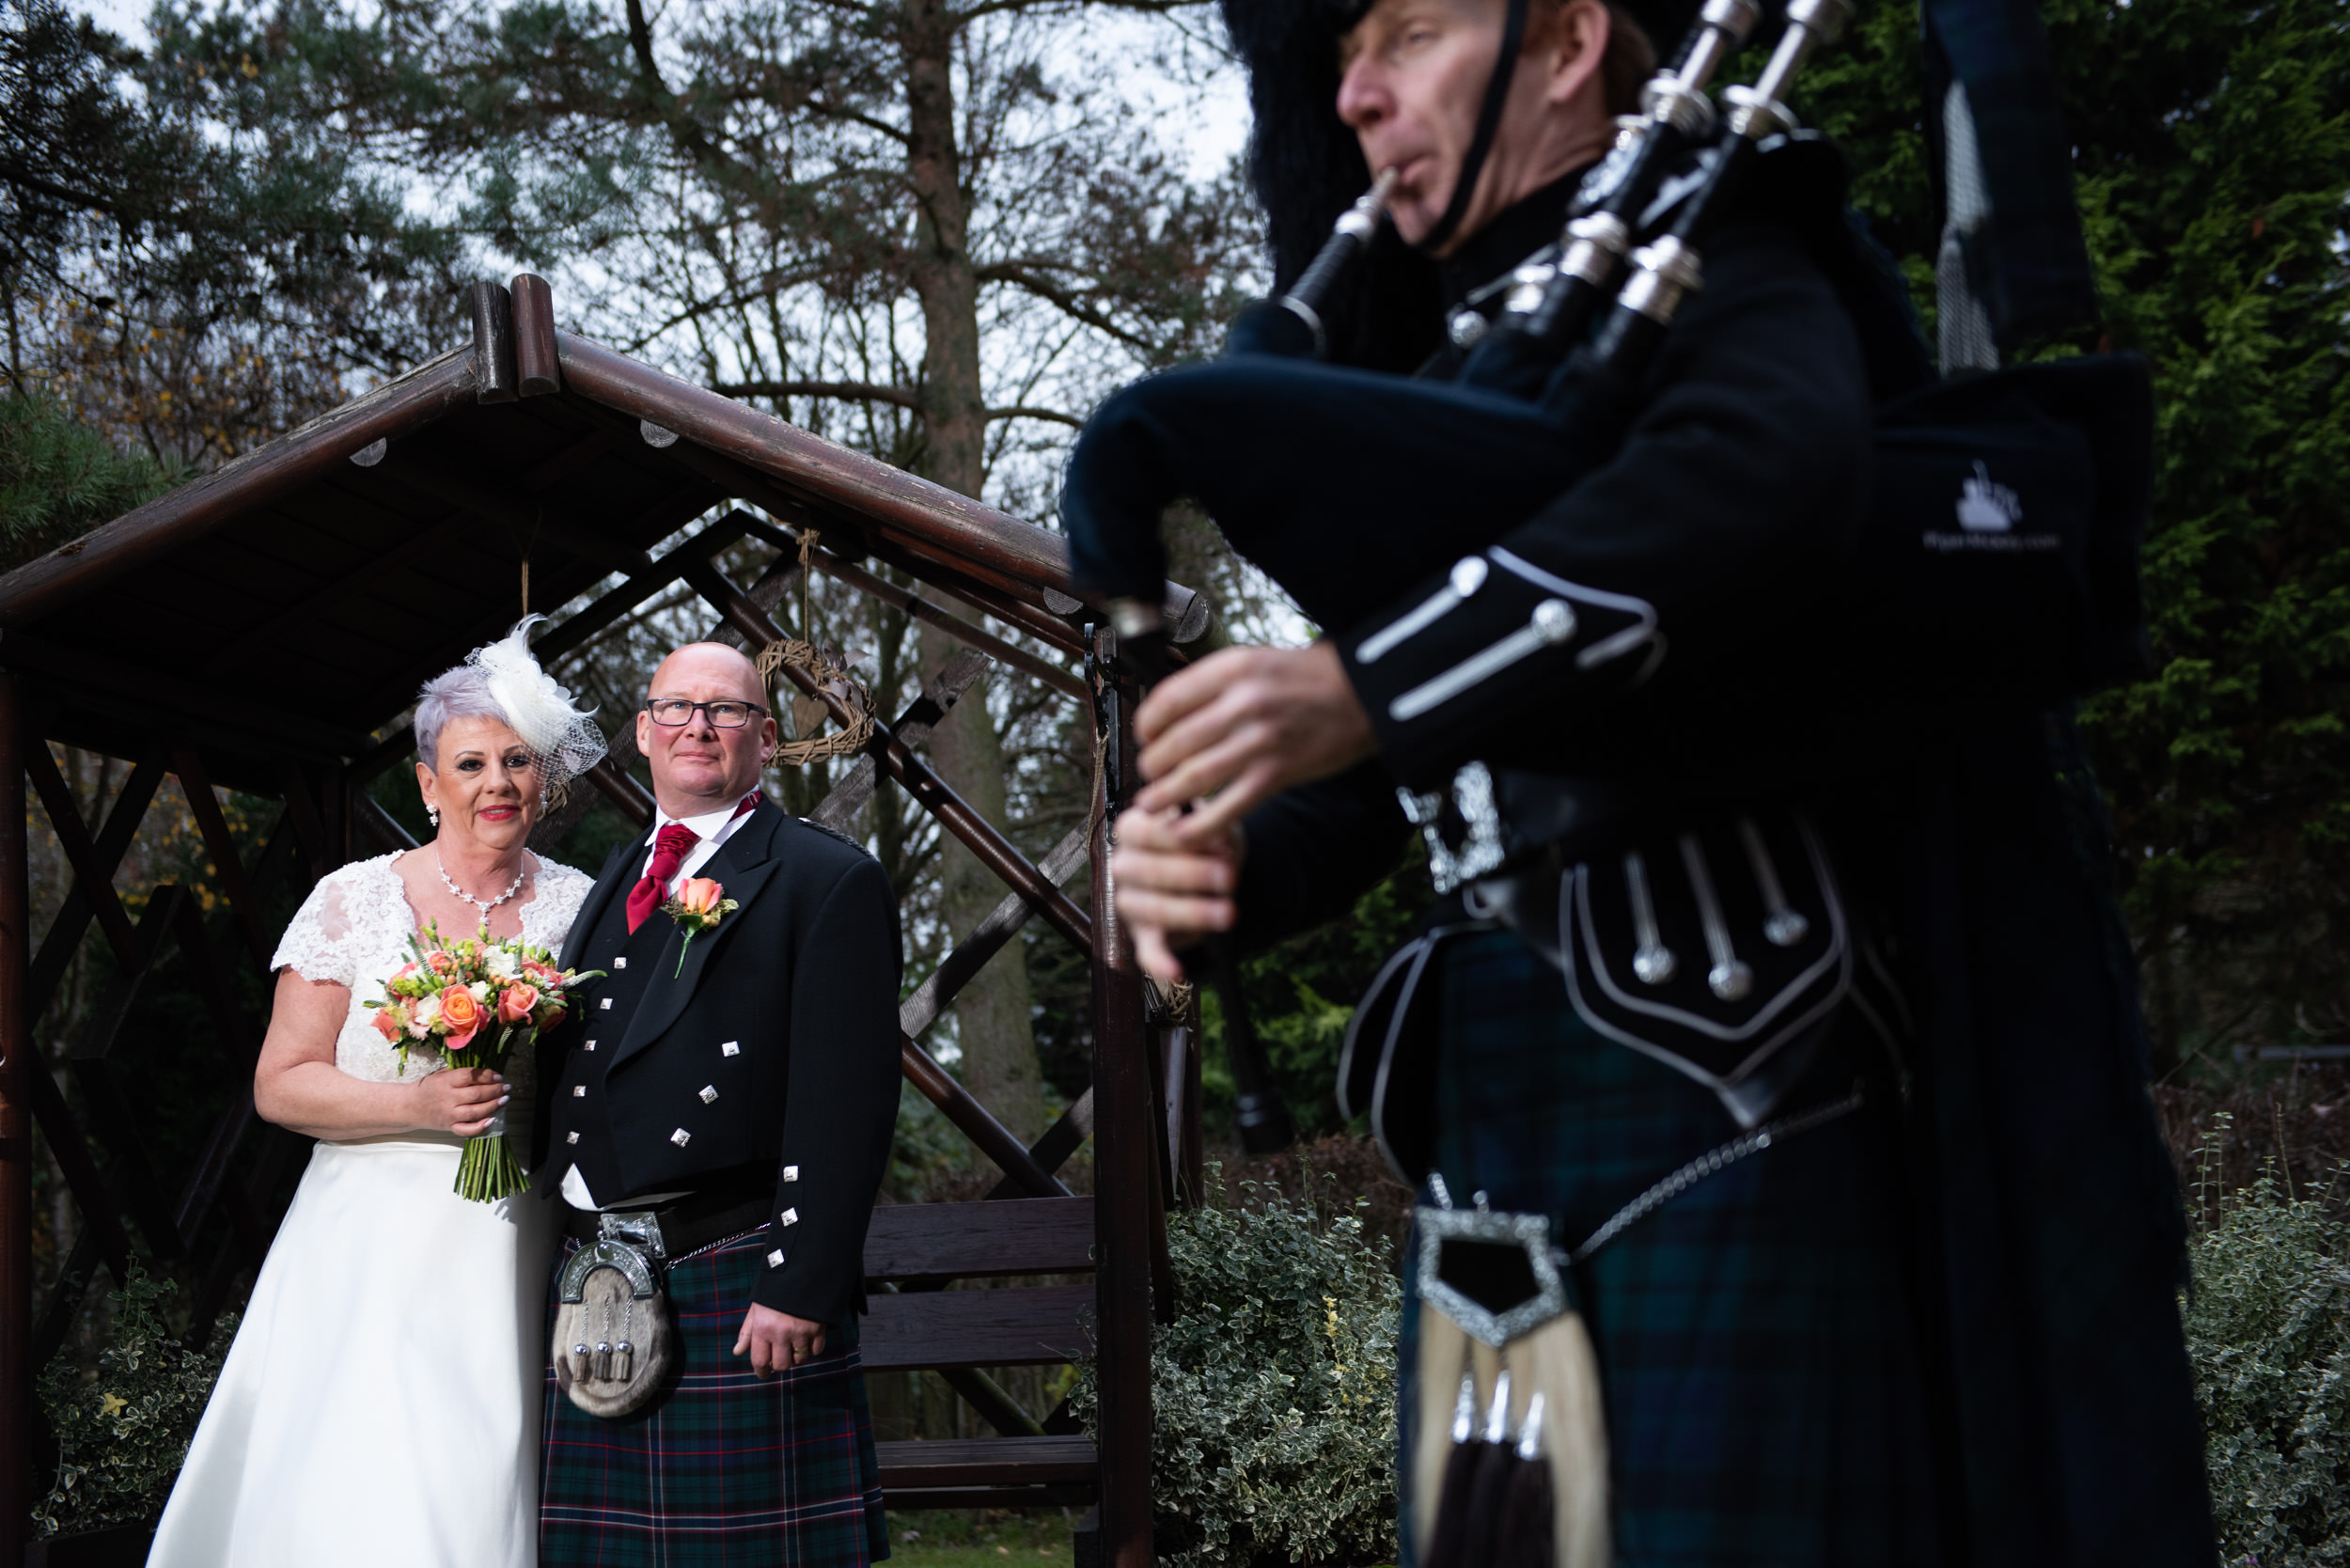 Newlyweds watching a Bag Piper playing outside